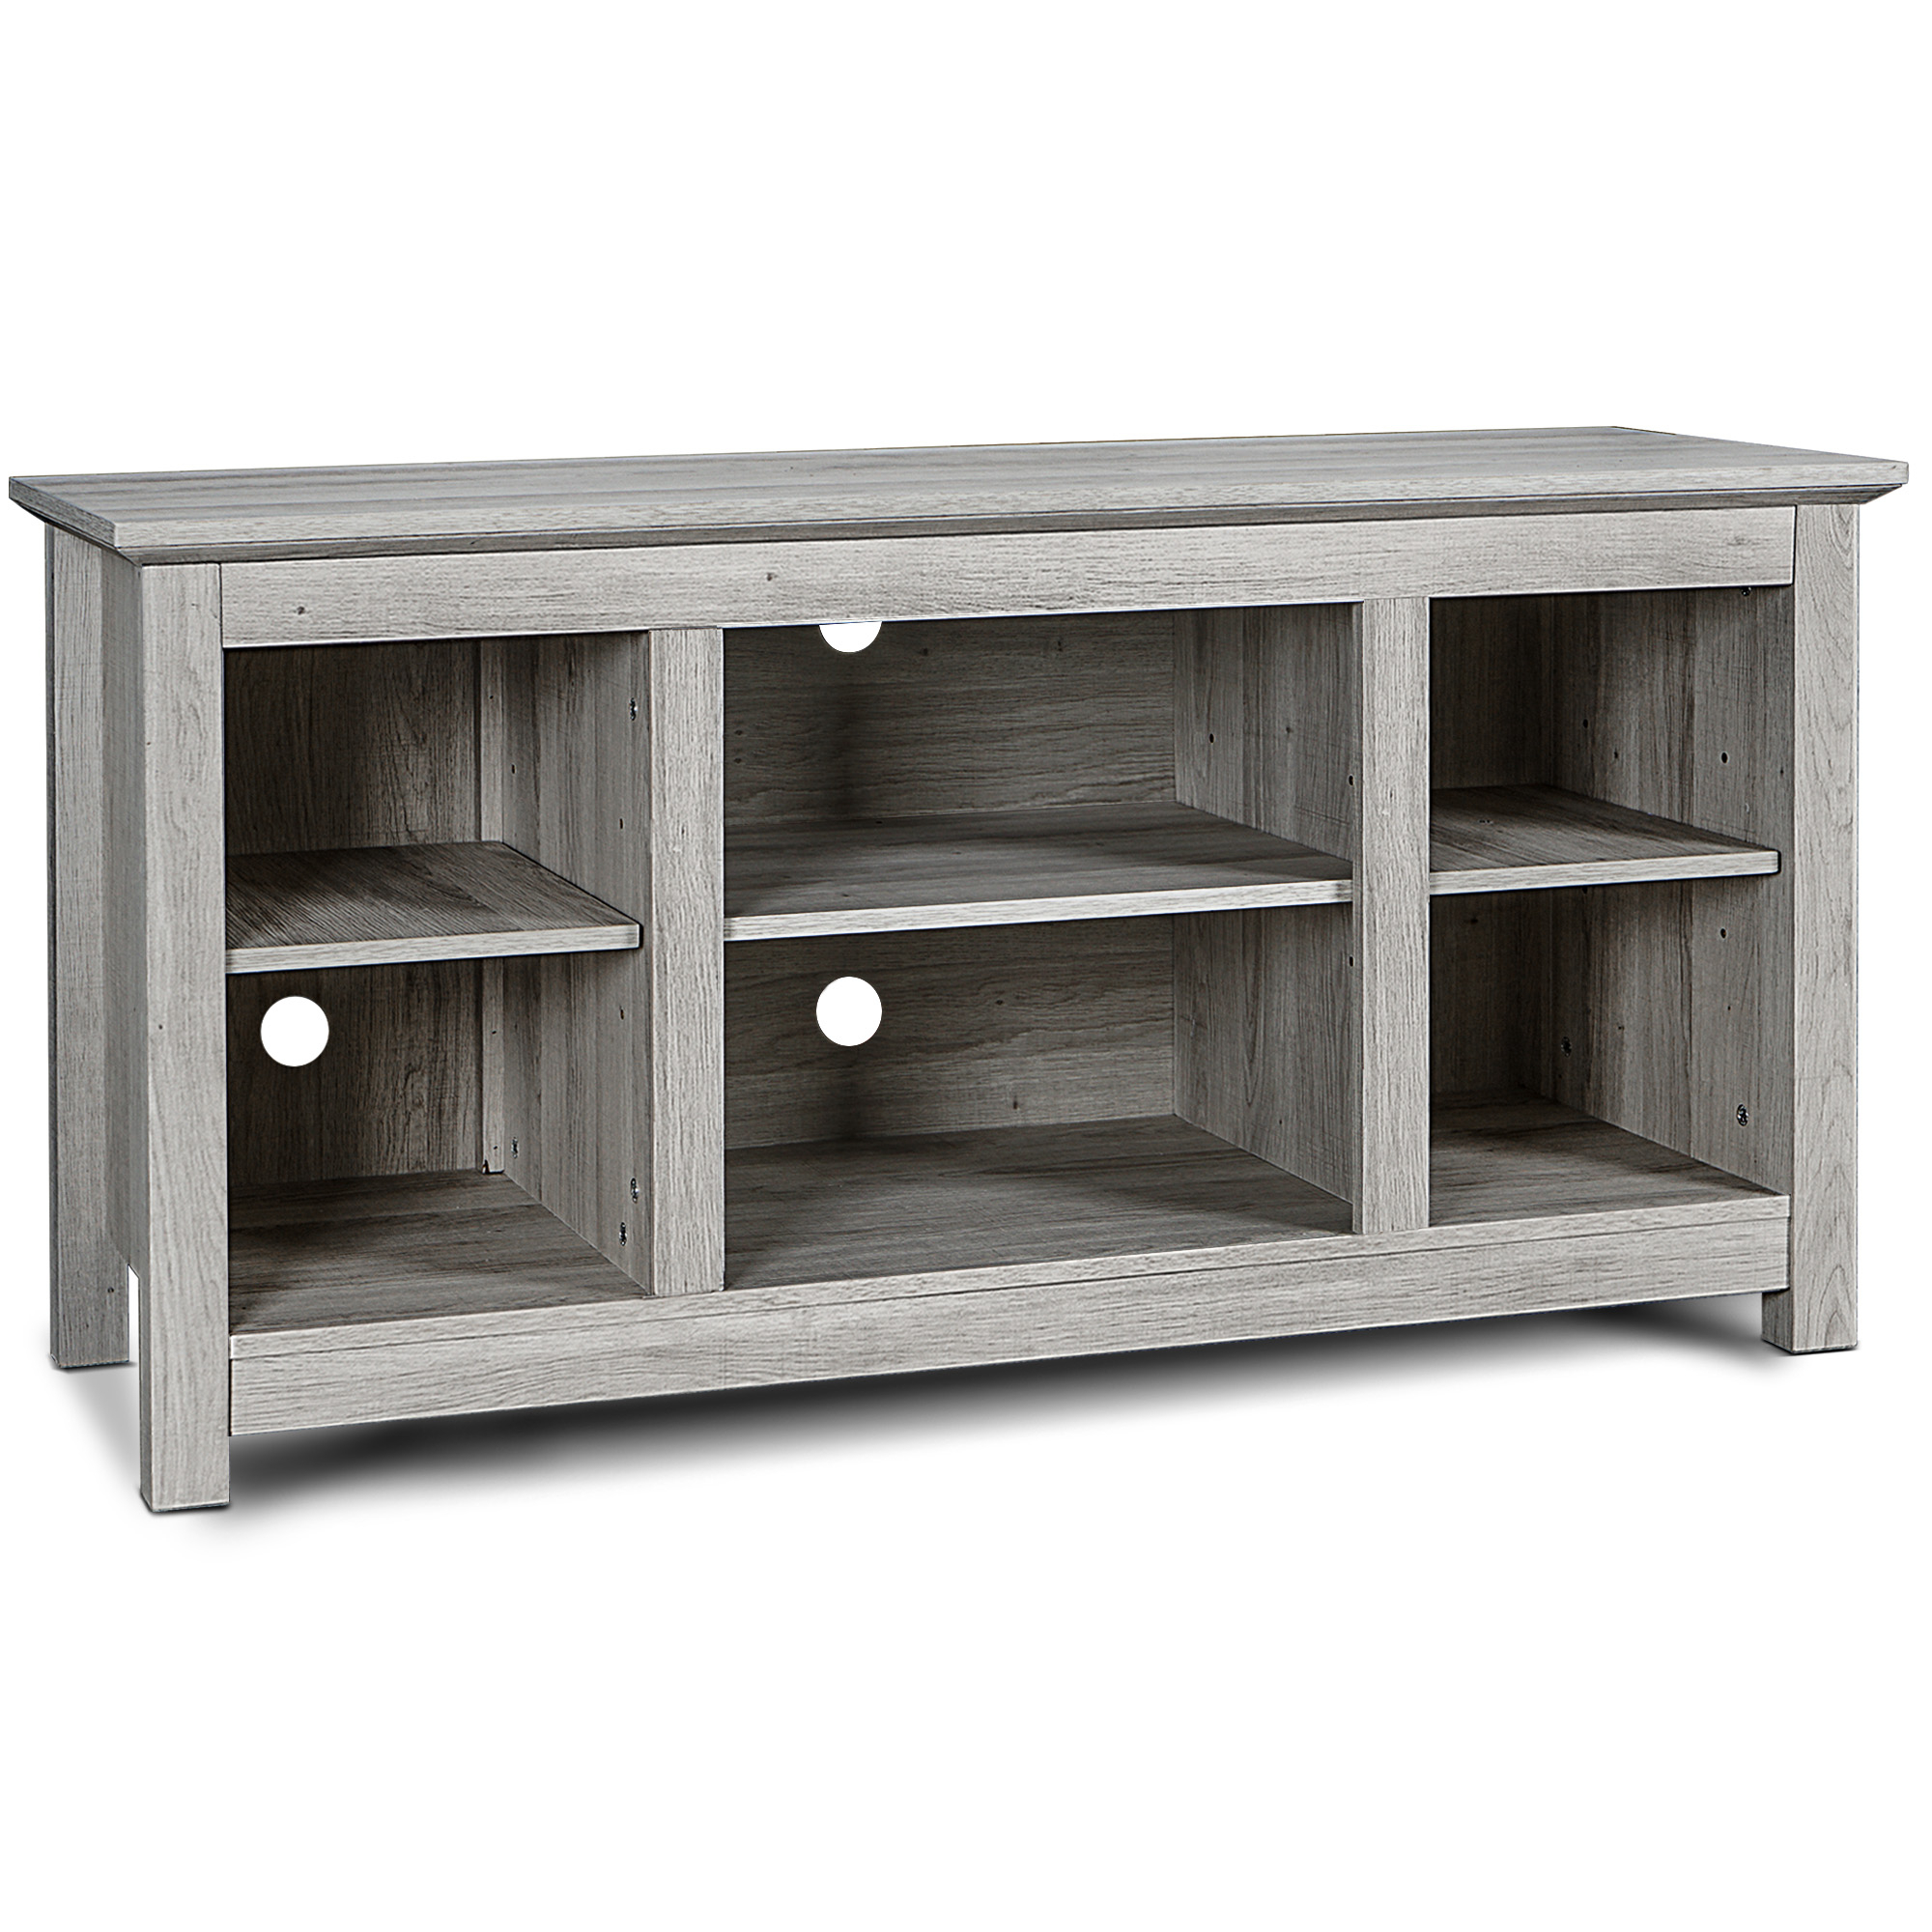 """Well Known 50 Inch Wide Television Stand Console For Tv's Up To 55 For Tv Stands For Tvs Up To 50"""" (View 21 of 25)"""